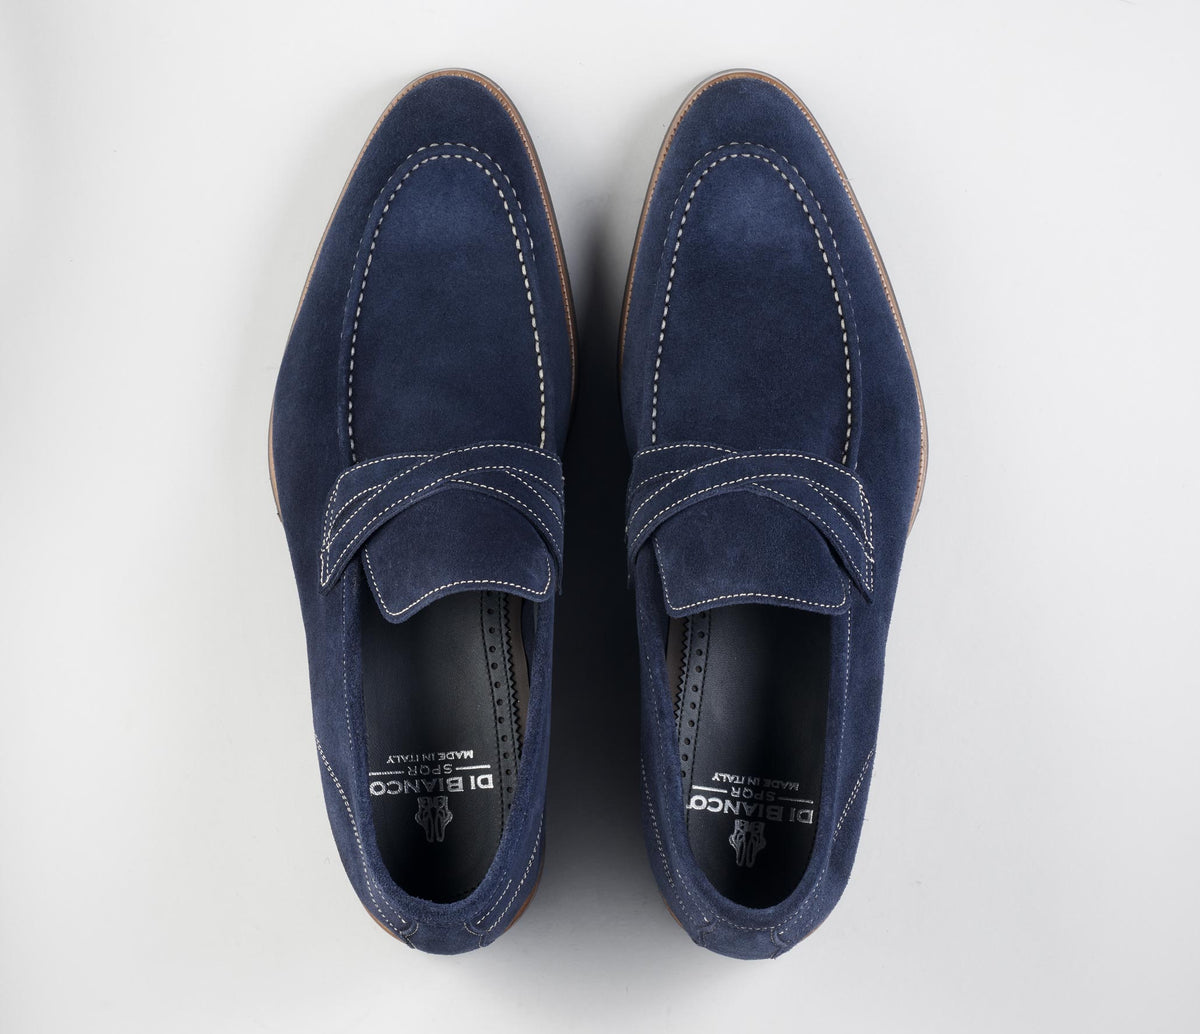 The Firenze Navy Men's Suede Loafers